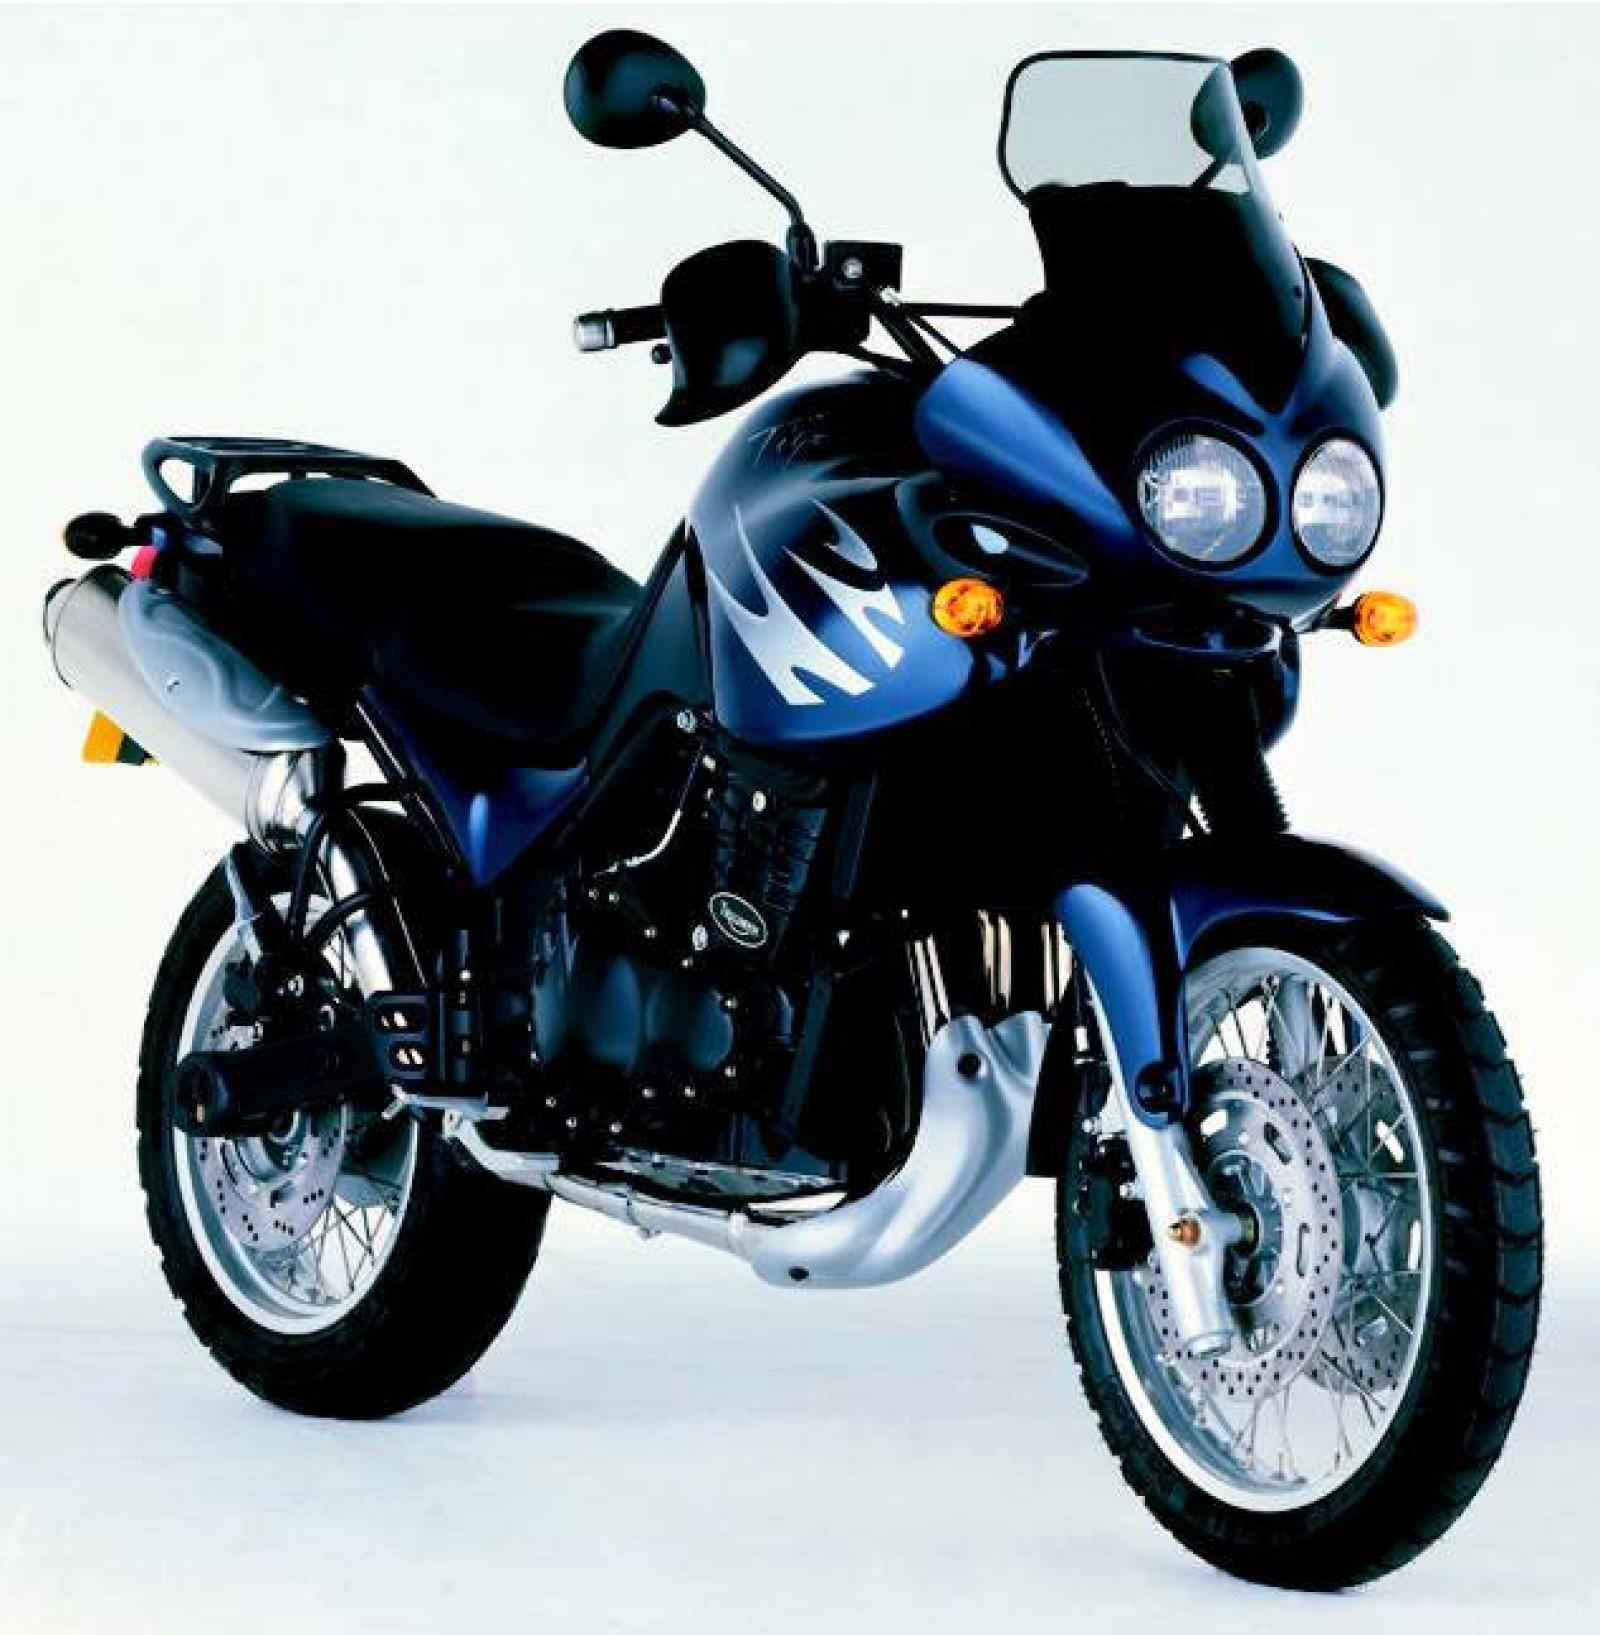 Triumph Tiger 900 1999 wallpapers #159915